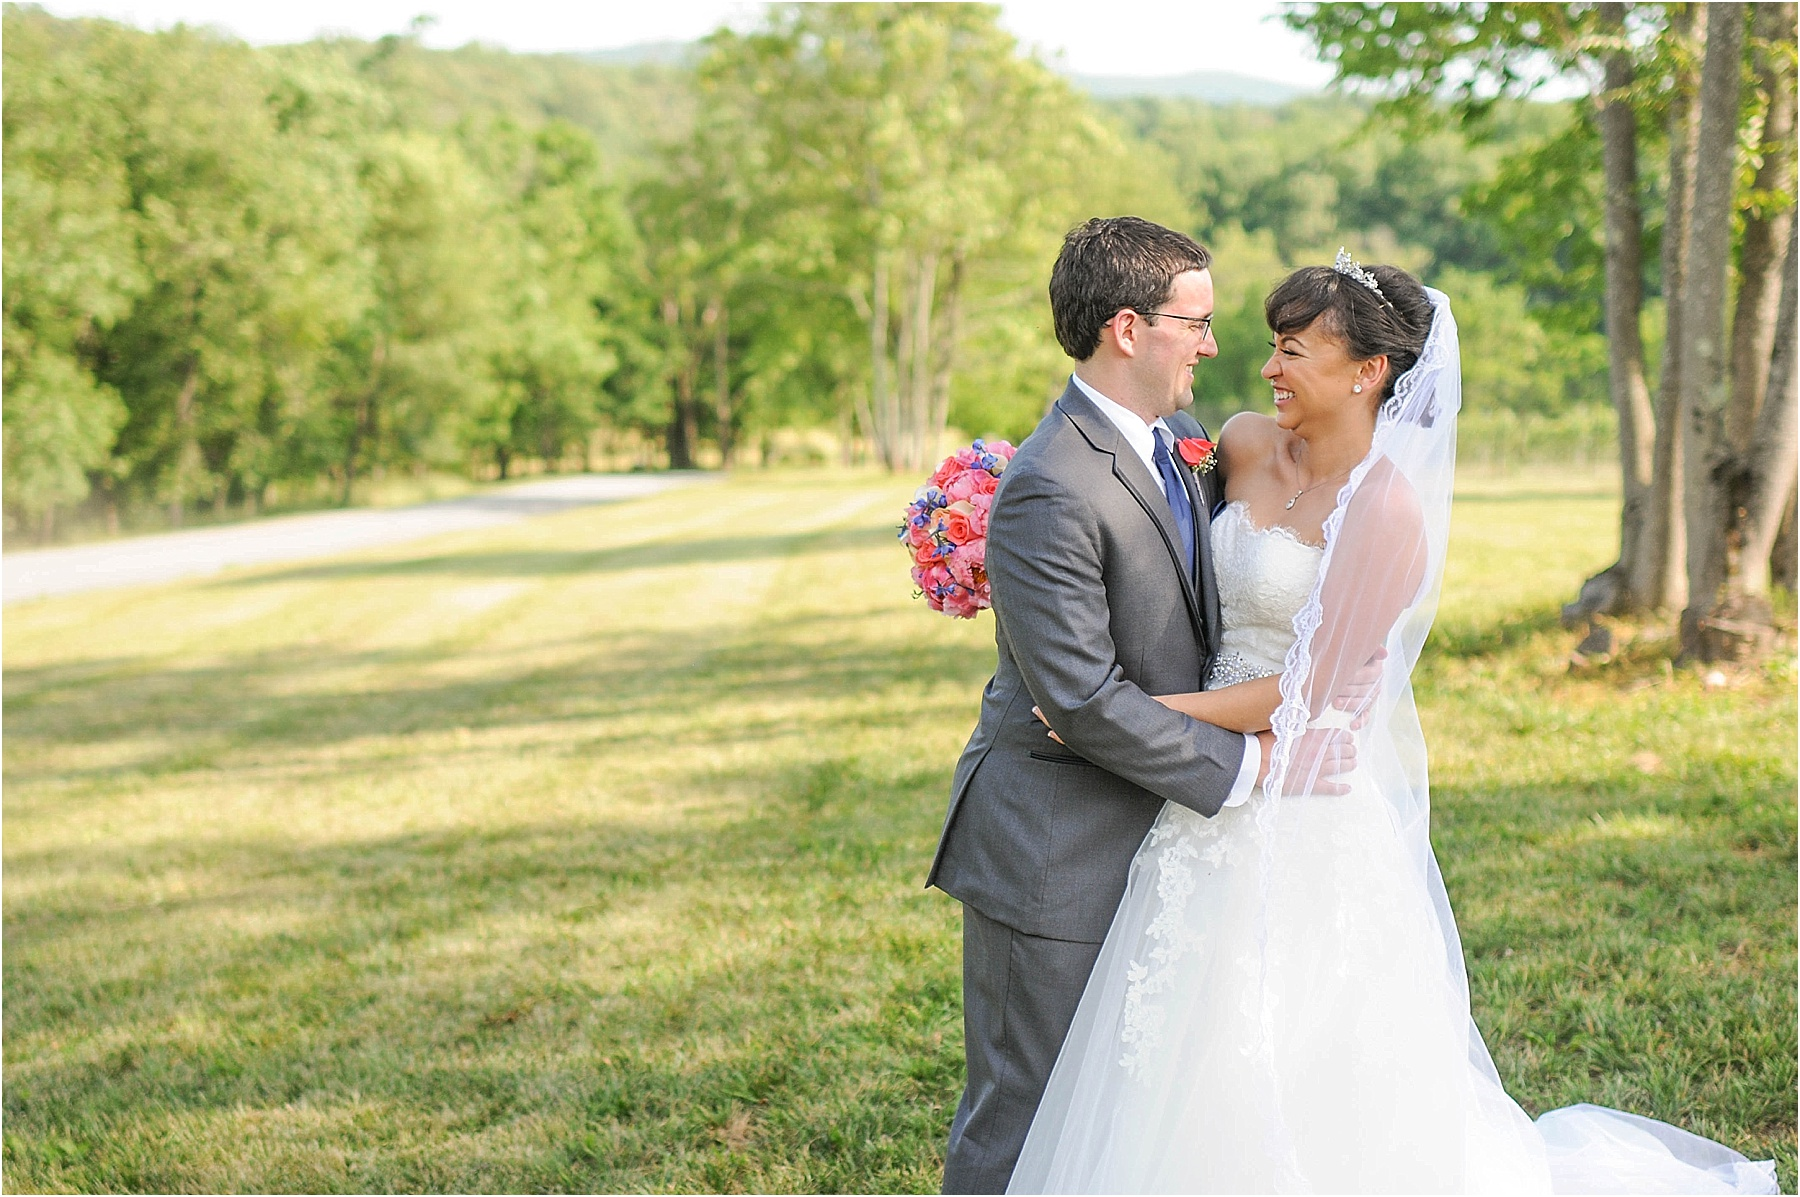 Cana Winery wedding in Virginia | Ana Isabel Photography 162